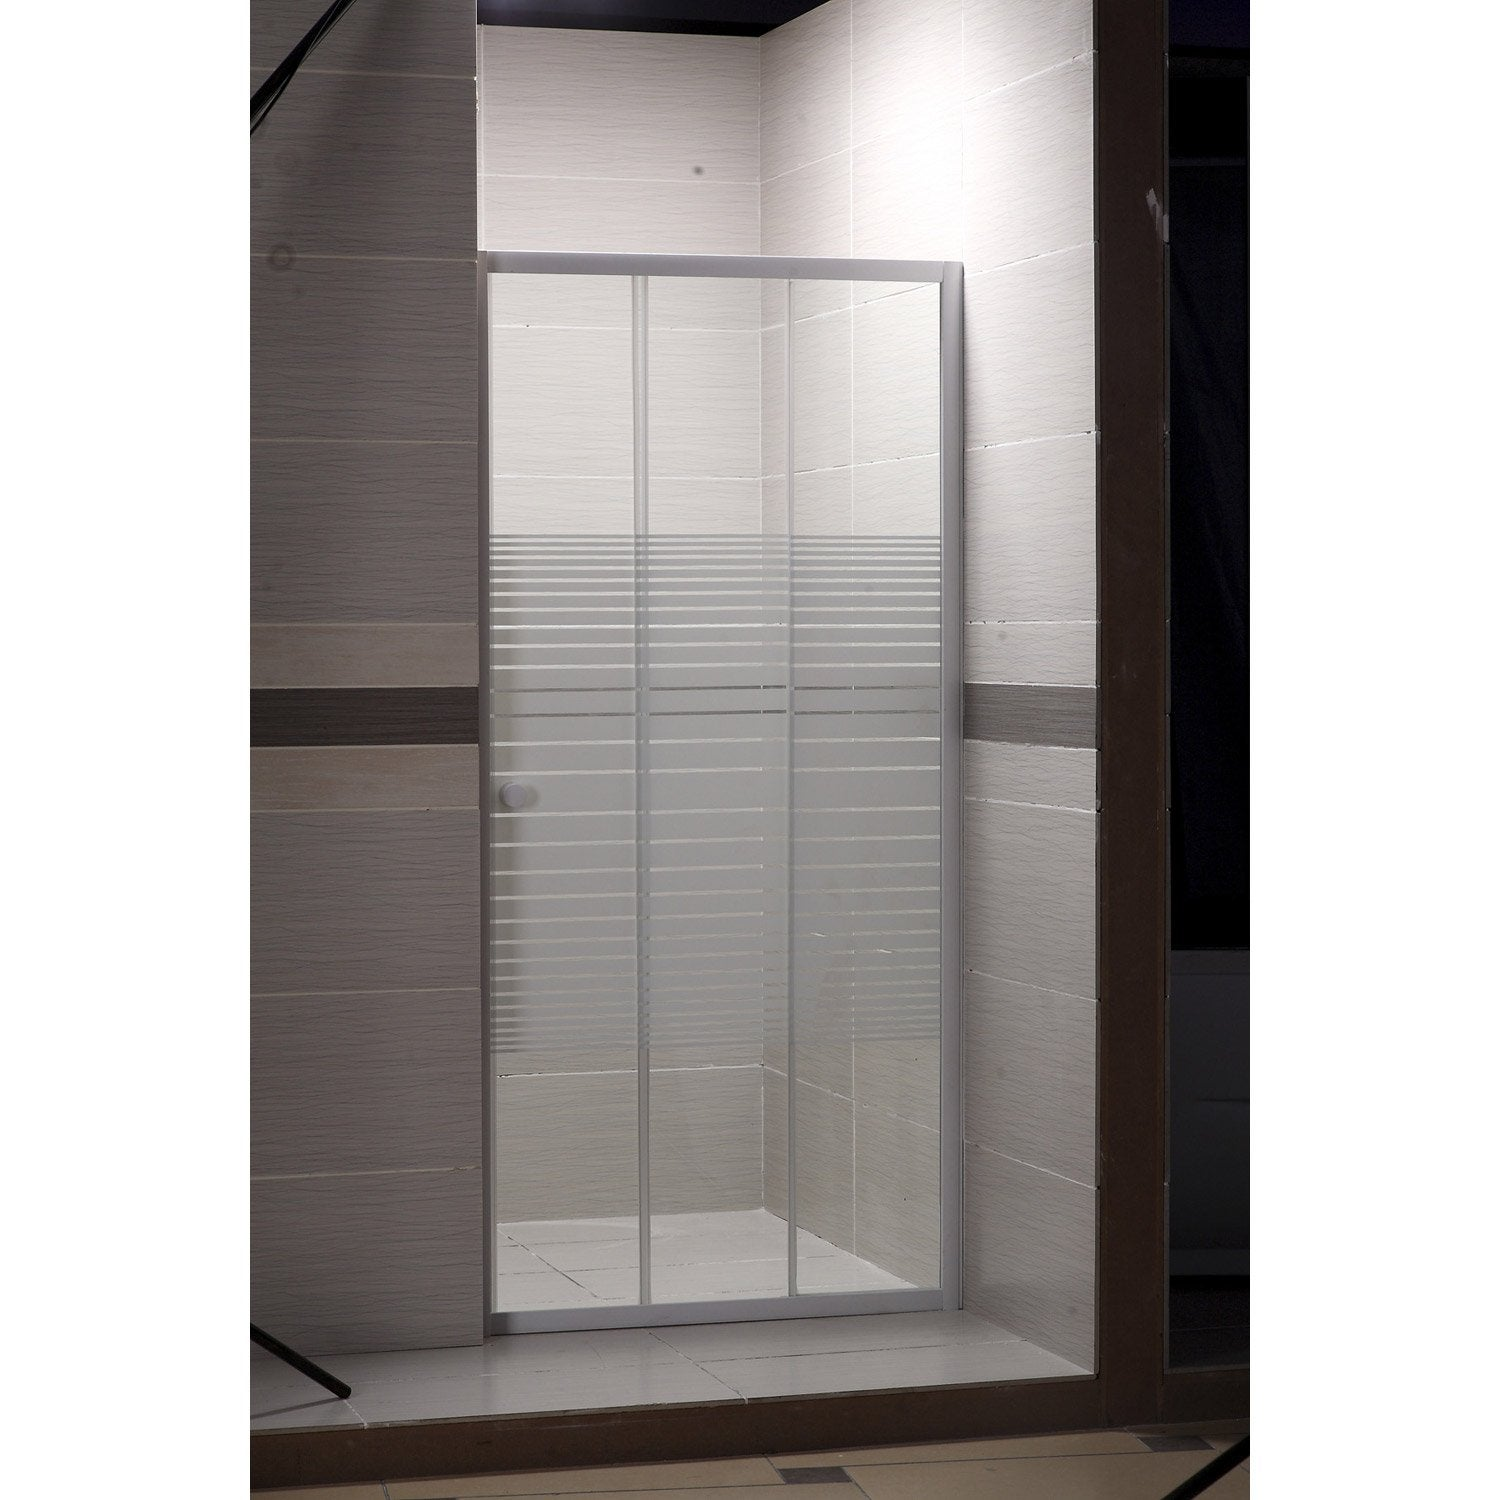 porte de douche coulissante 88 91 5 cm profil blanc primo leroy merlin. Black Bedroom Furniture Sets. Home Design Ideas